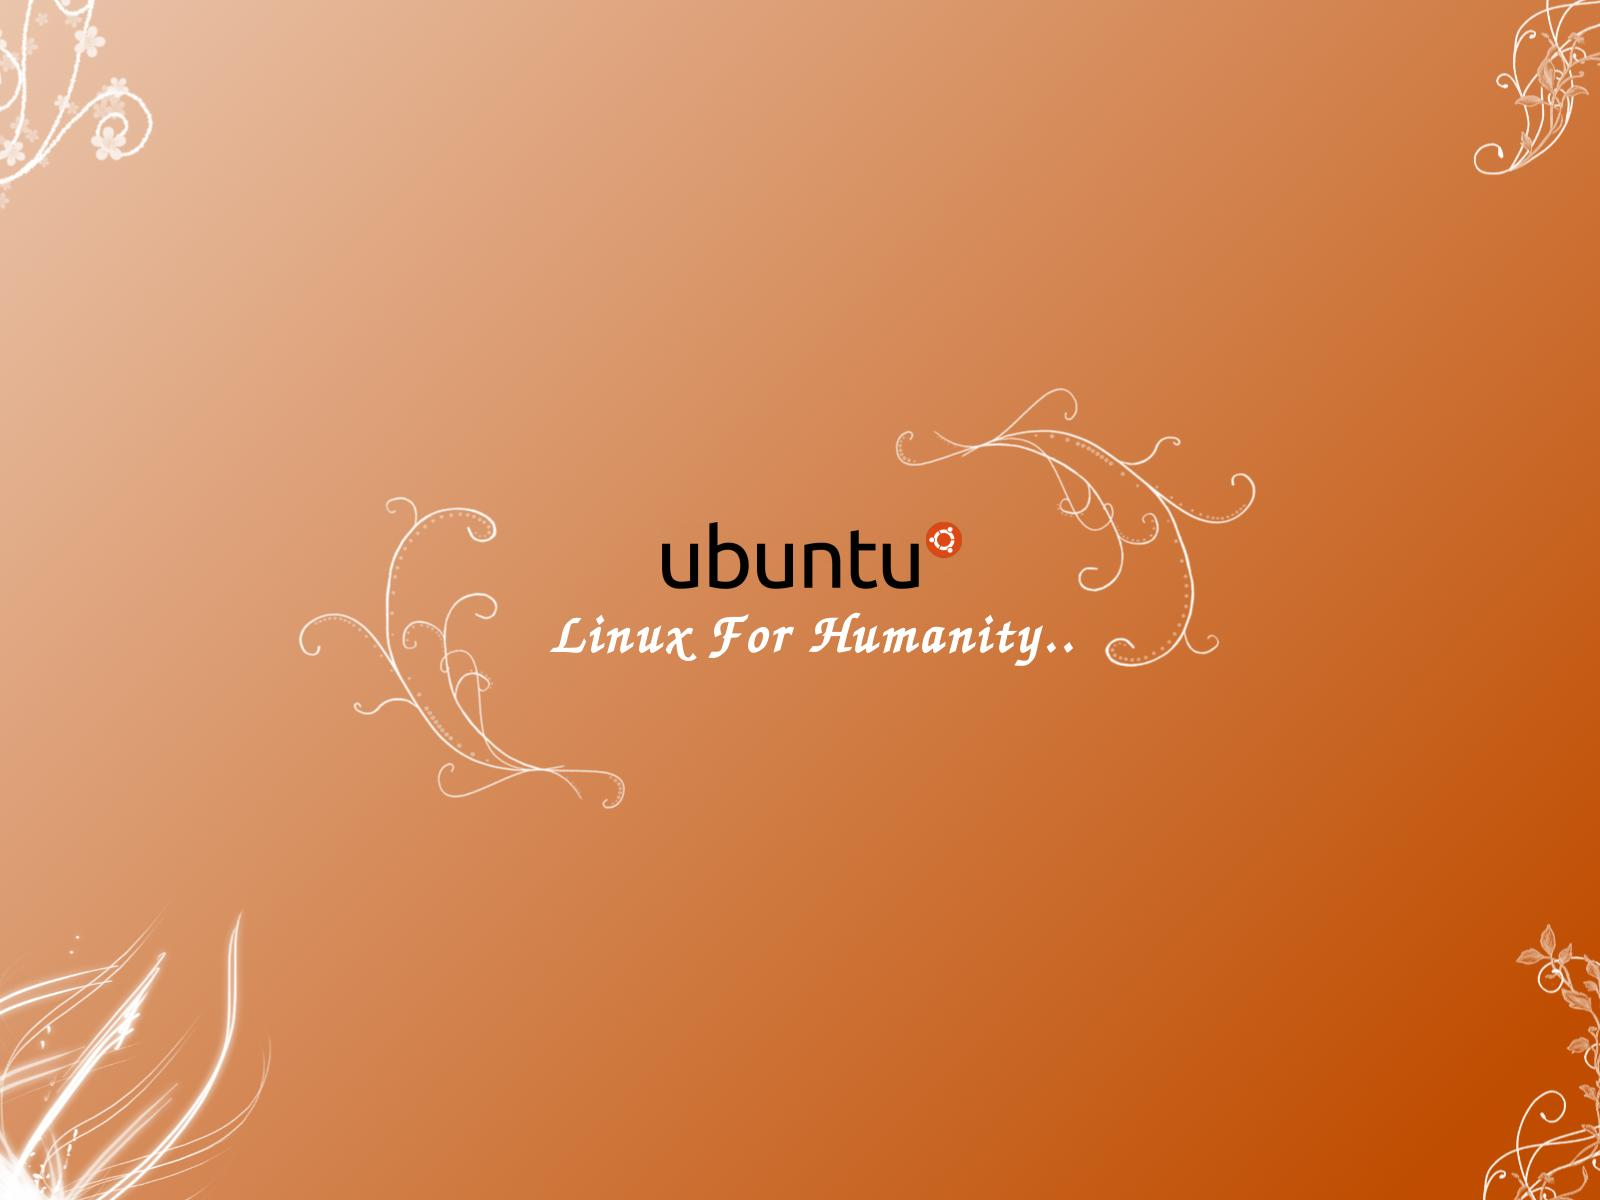 Ubuntu Wallpapers Location 1600x1200